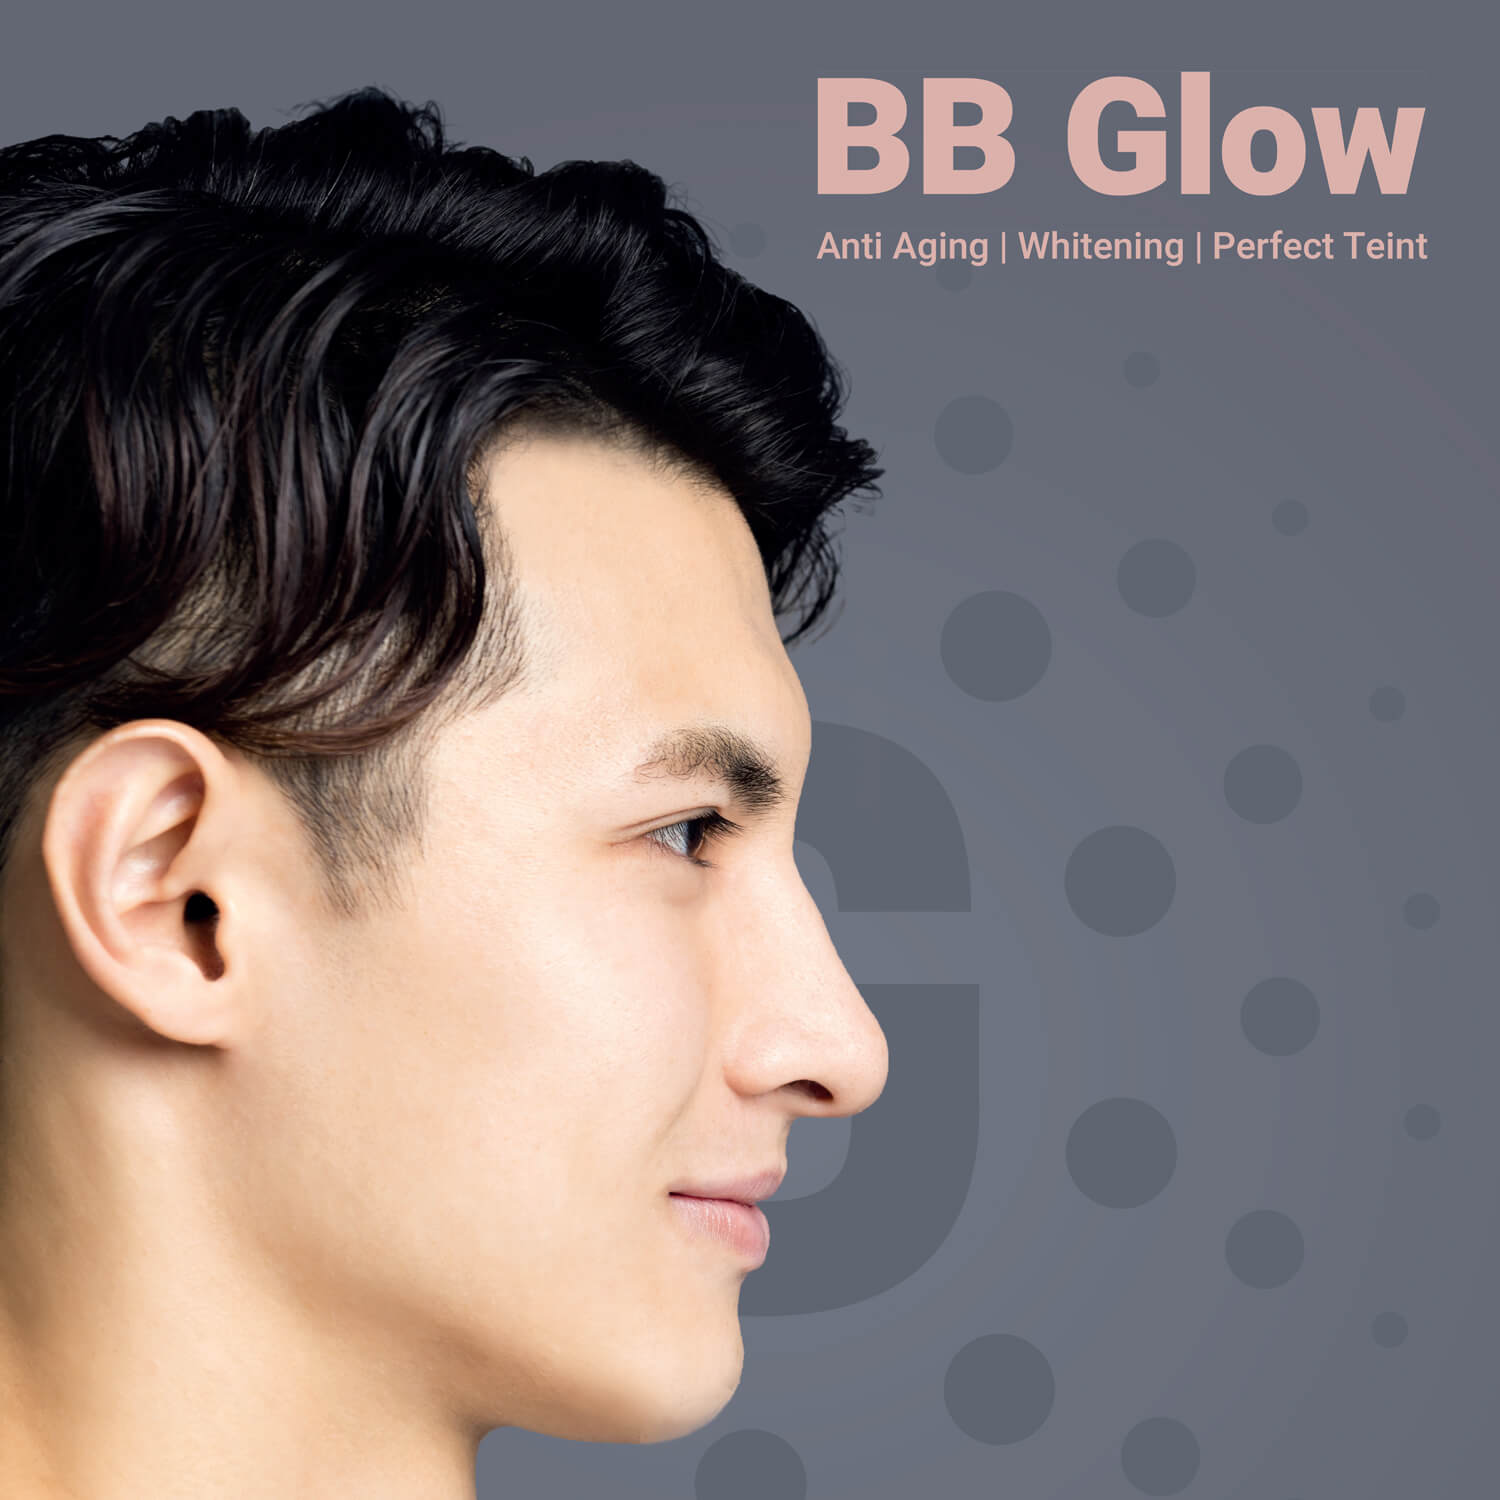 BB Glow Schulung ohne Praxis